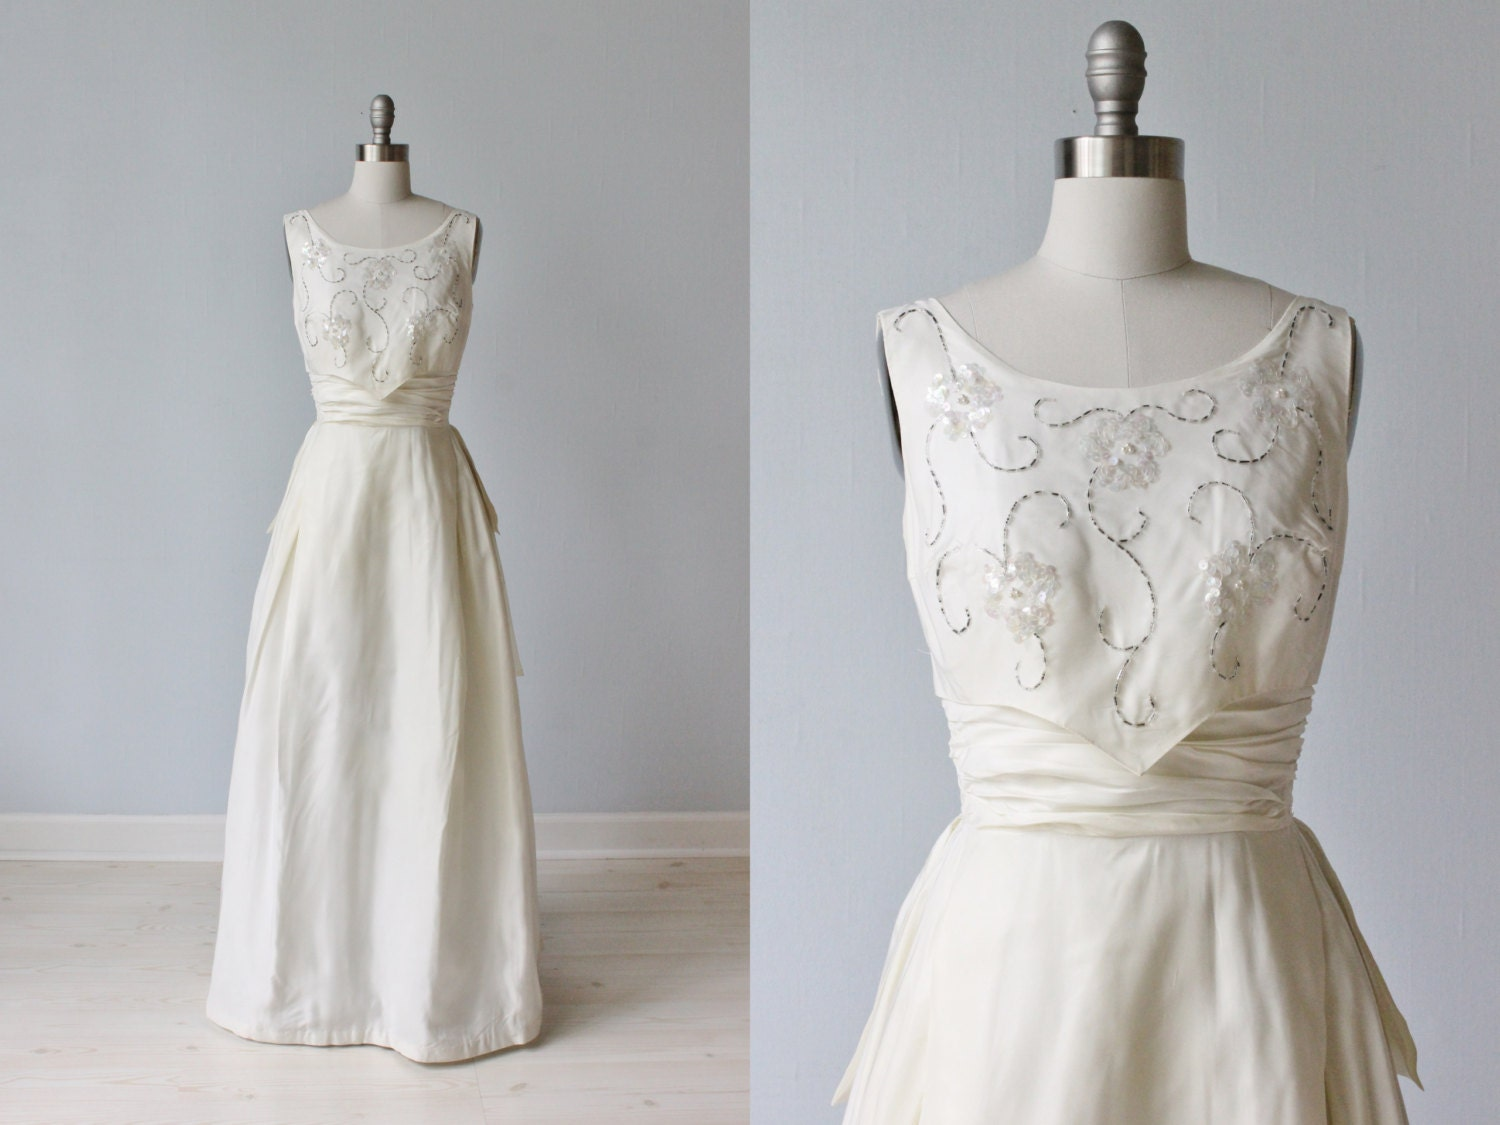 1960s wedding dress sheath wedding dress sleeveless a Wedding dress 1960